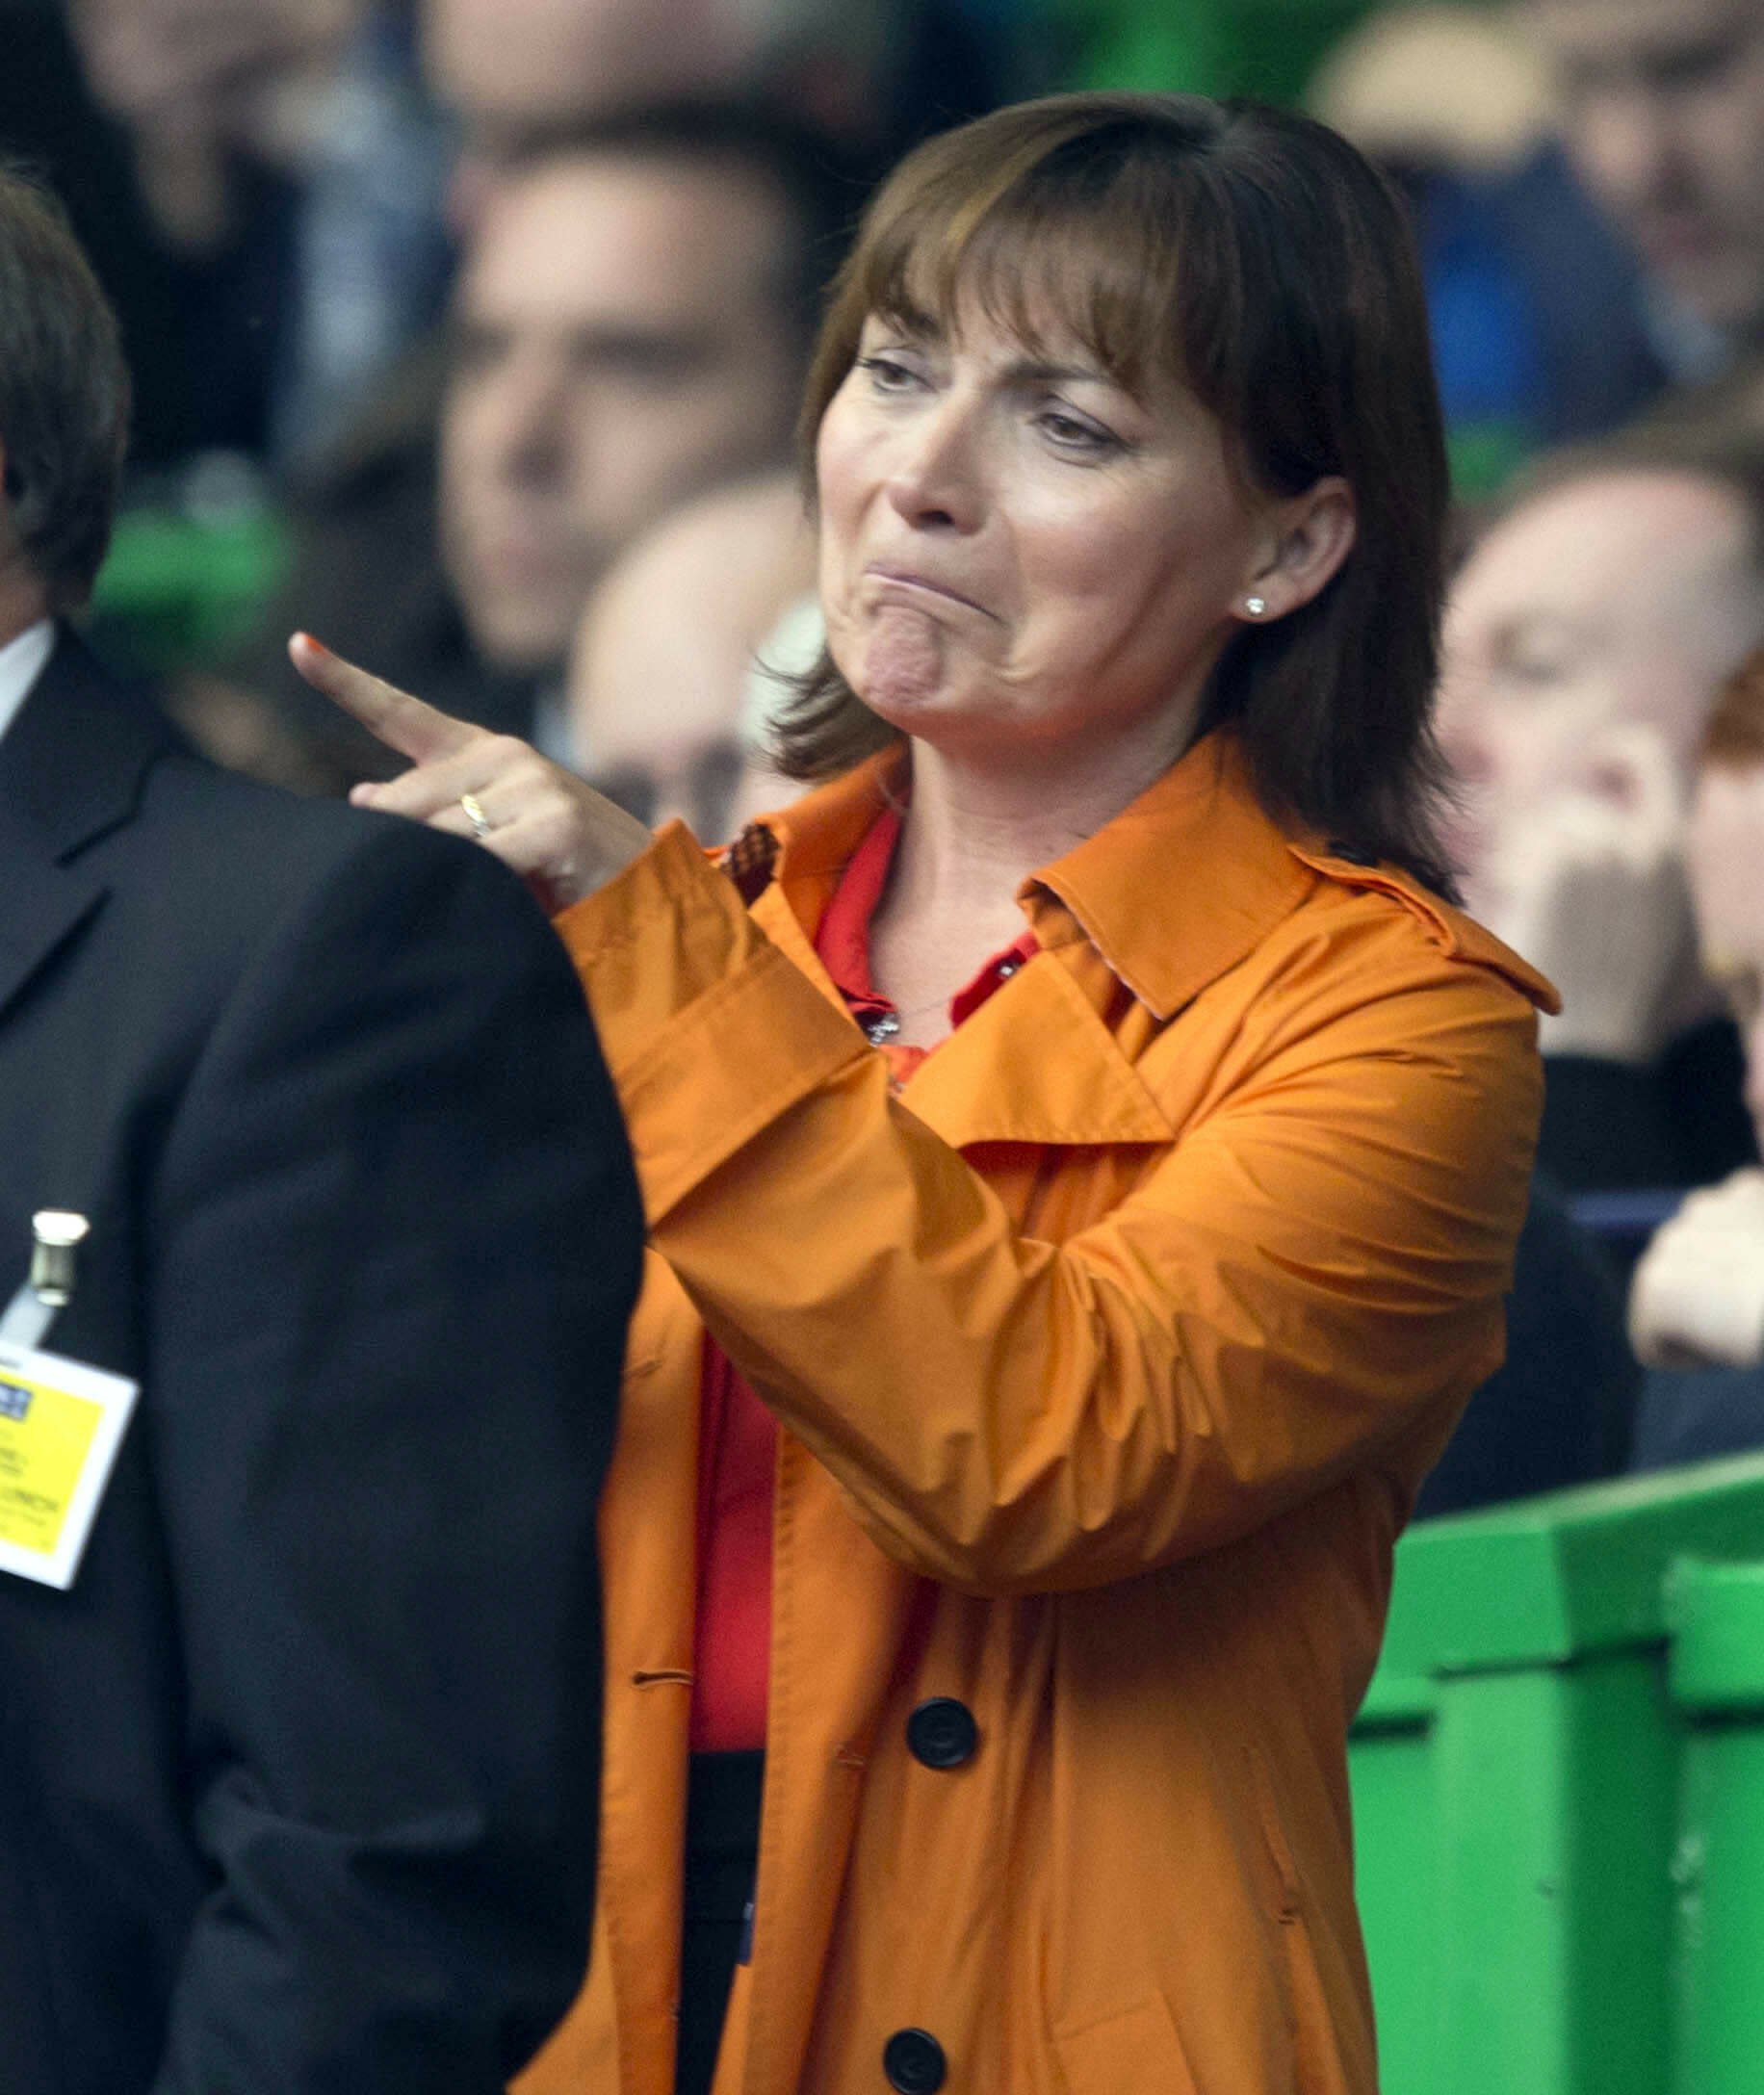 Lorraine Kelly in the stands